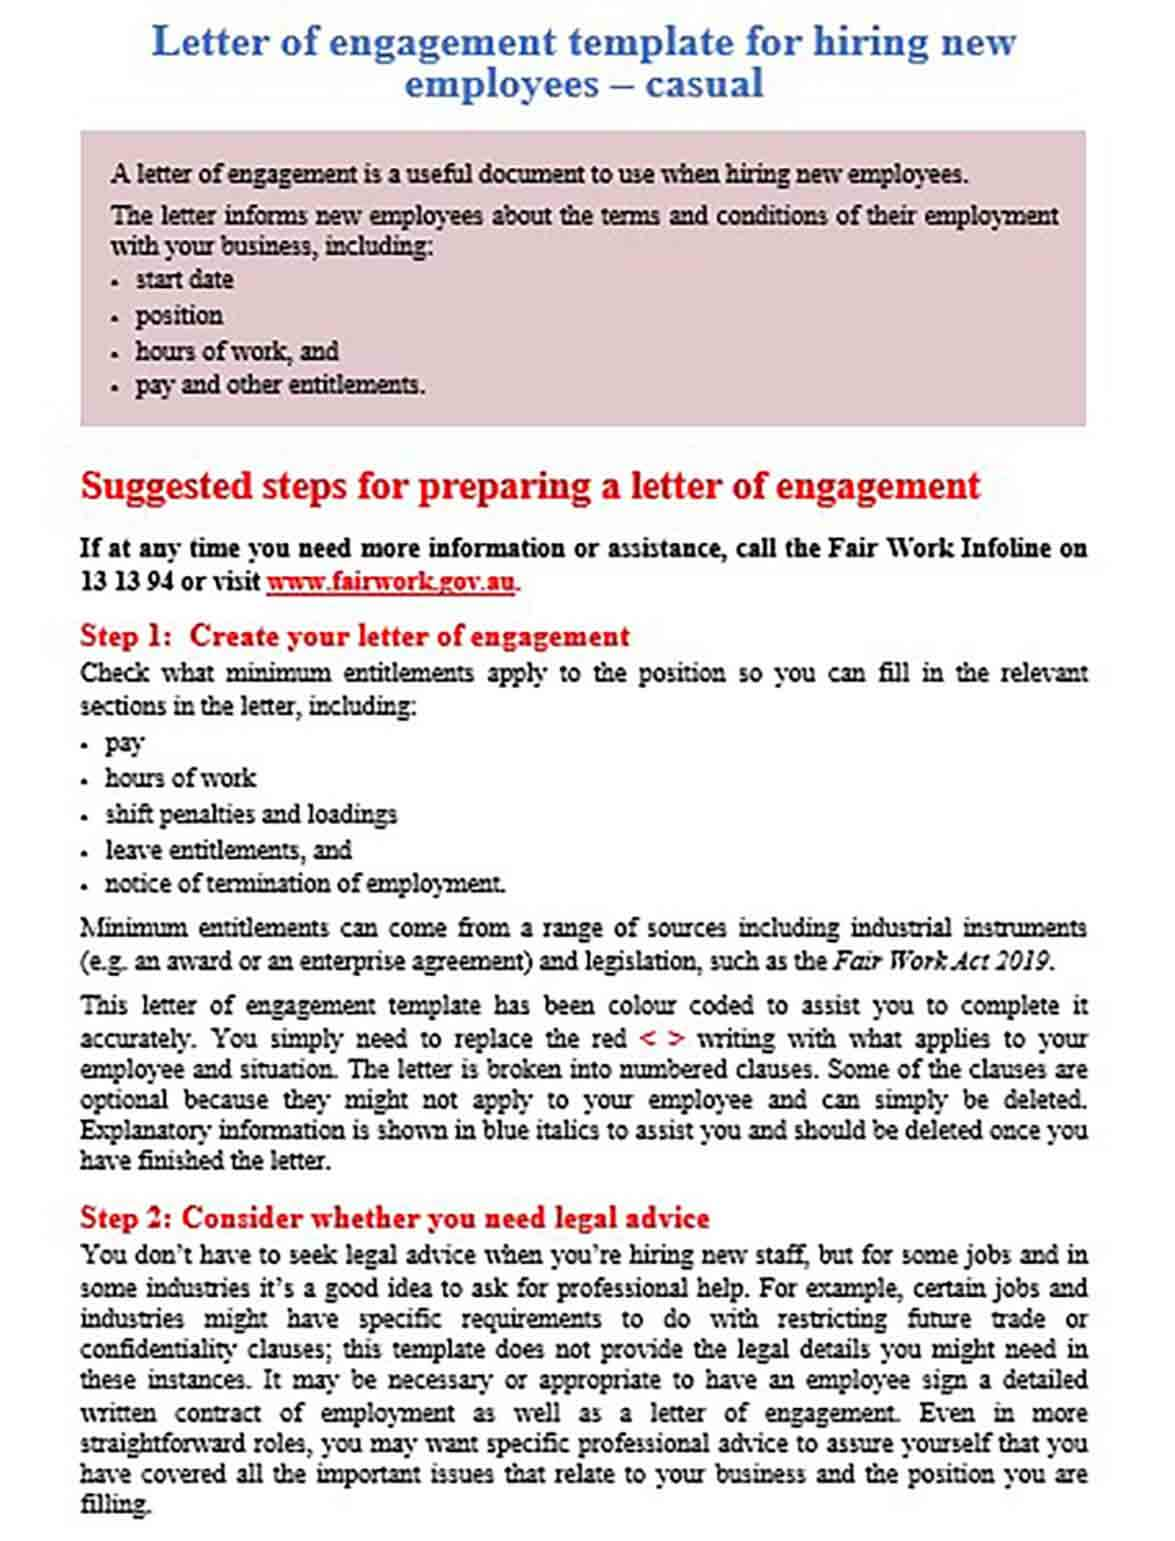 Letter of engagement casual employee